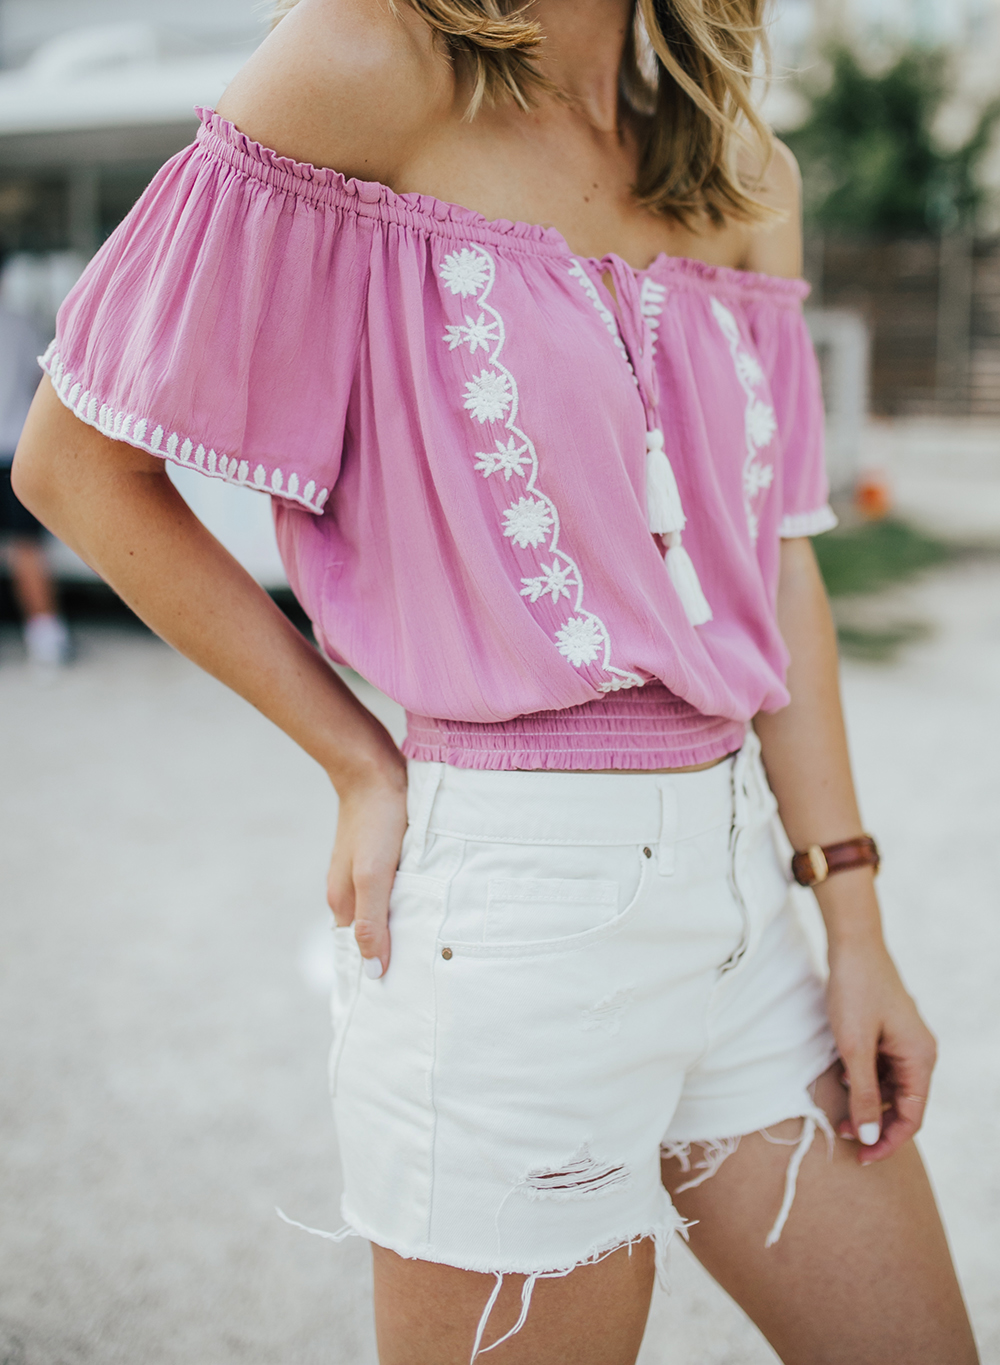 livvyland-blog-olivia-watson-austin-texas-fashion-blogger-pacsun-mom-shorts-off-white-vans-sneakers-summer-outfit-2